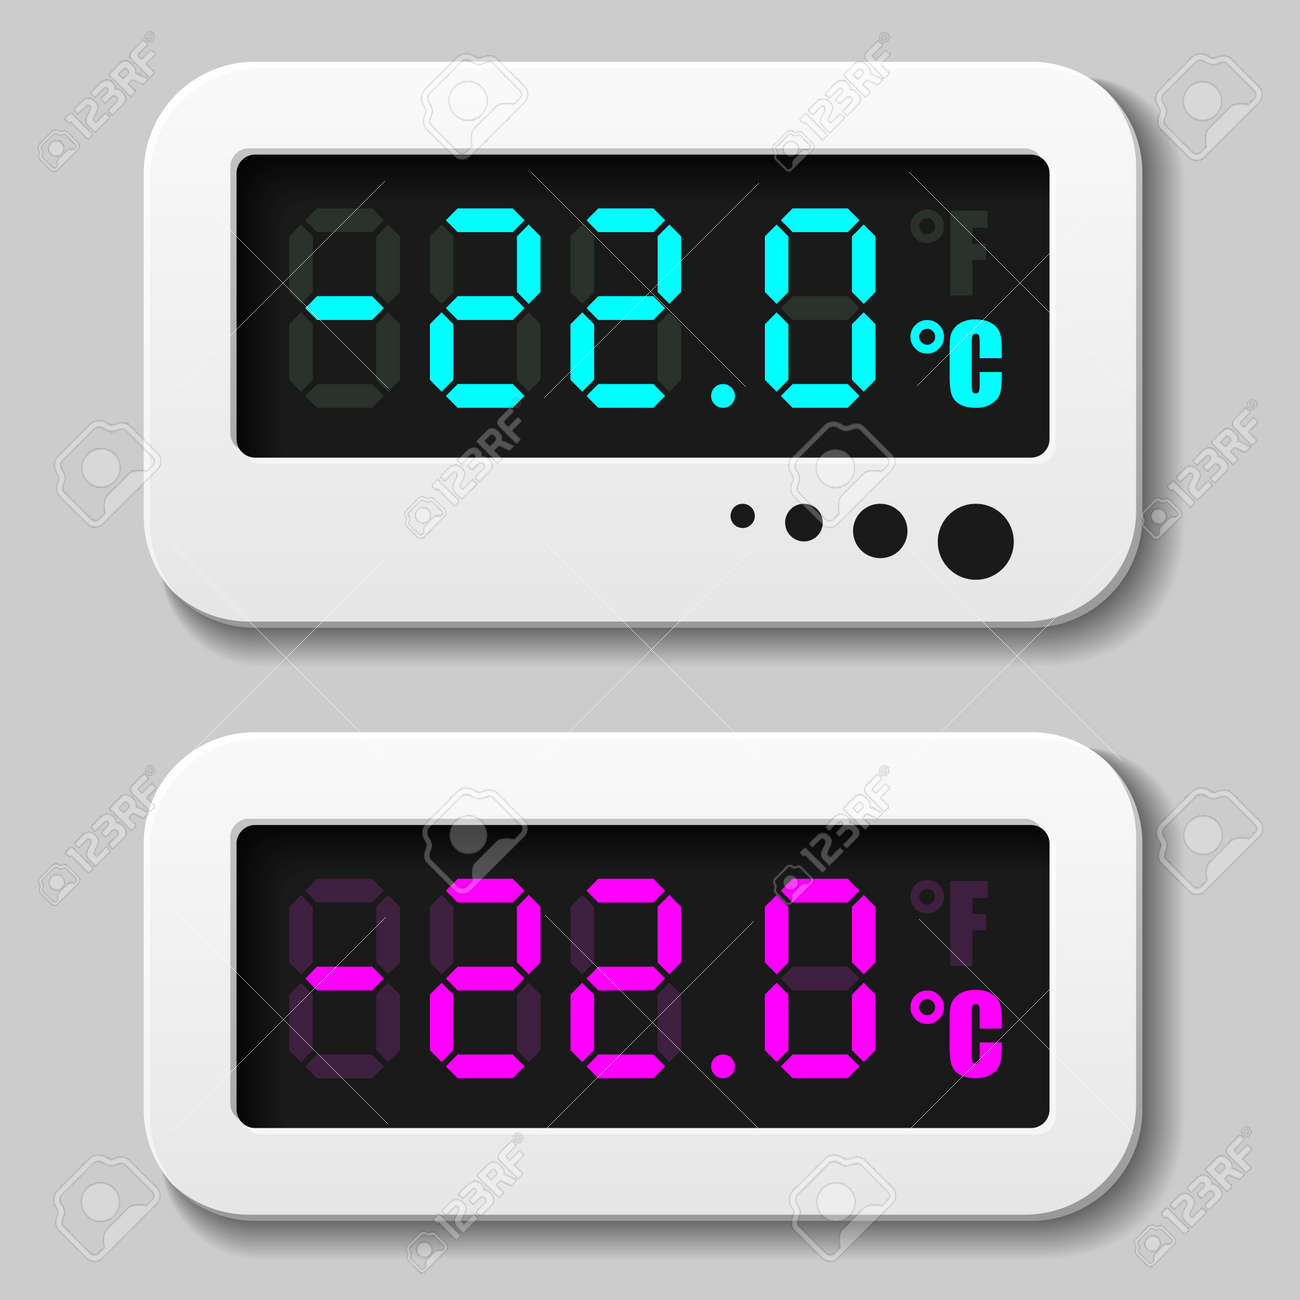 glowing digital thermometer icons Stock Vector - 16161633